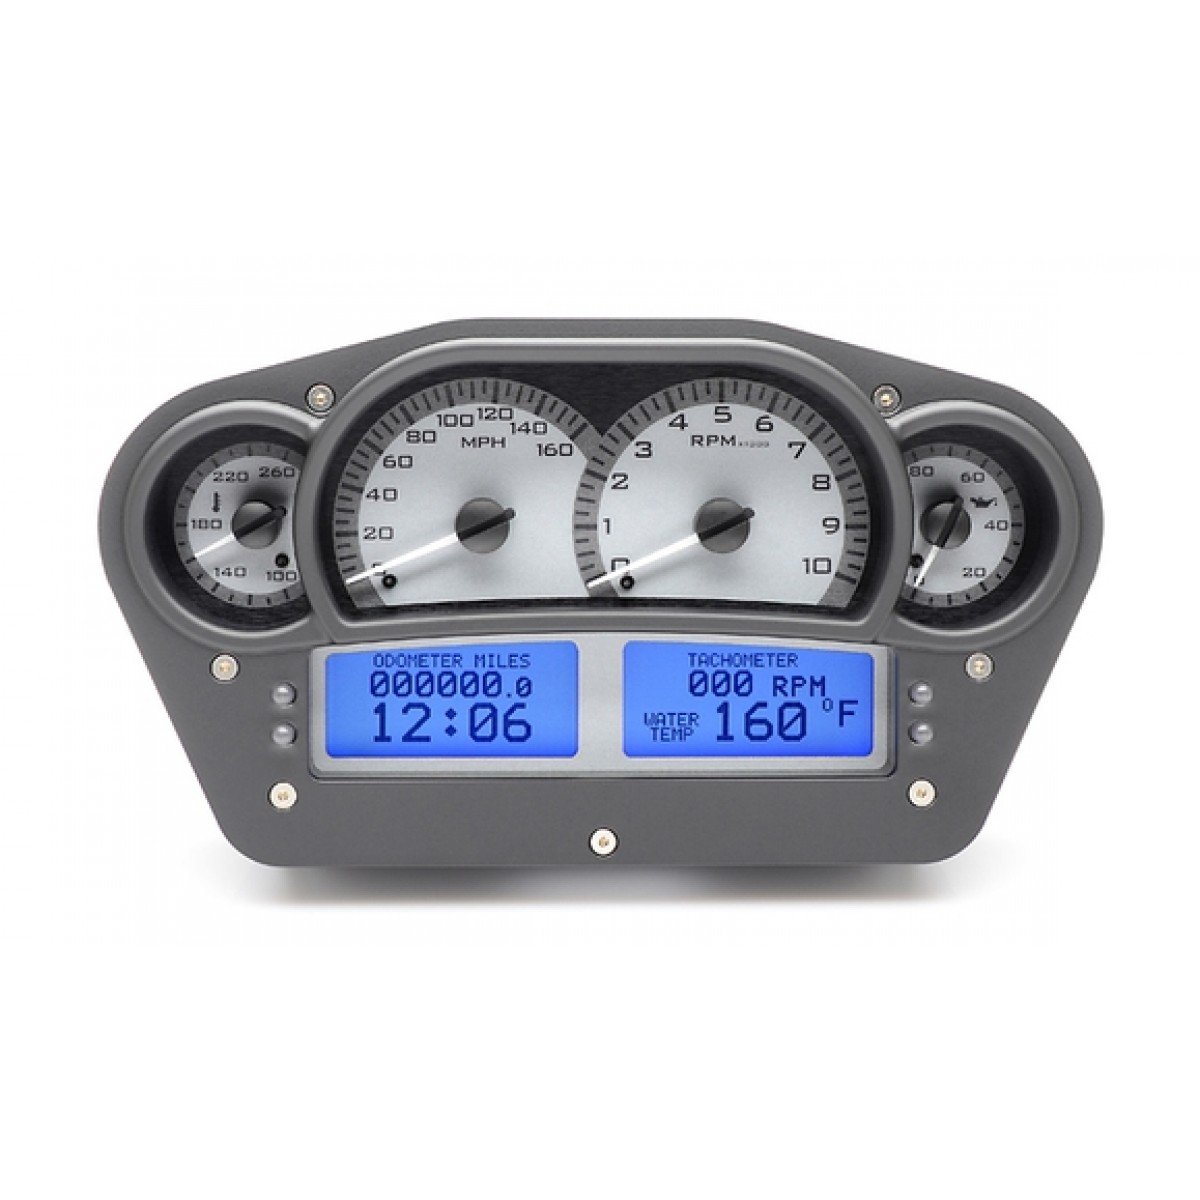 Digital Gauge Cluster : Dakota digital vhx universal instrument cluster